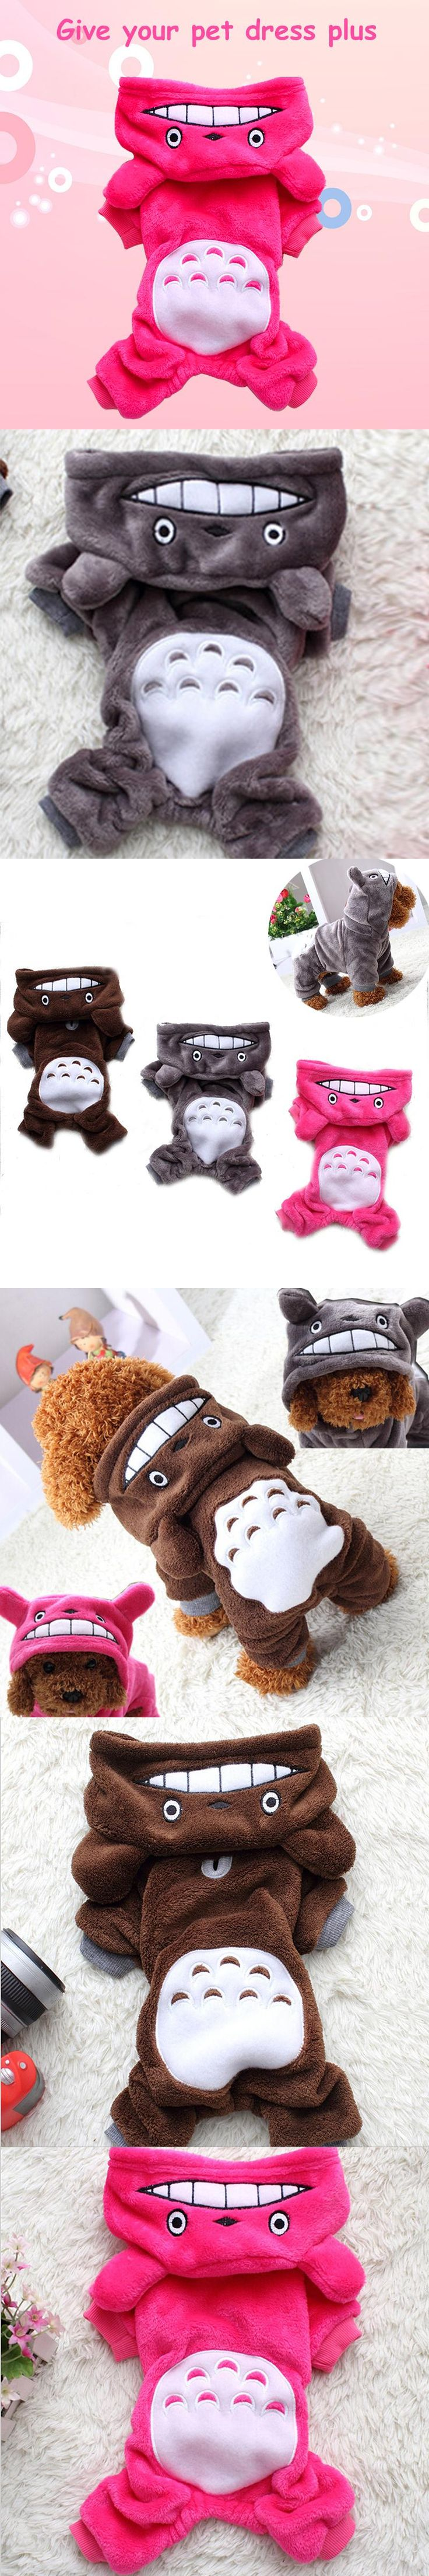 Hot Selling Fleece Pet Cat Dog Costume Soft Warm Dogs Clothes Cute Cartoon Hoodie Coat Four Leg Jumpsuit Clothing for Small Pets